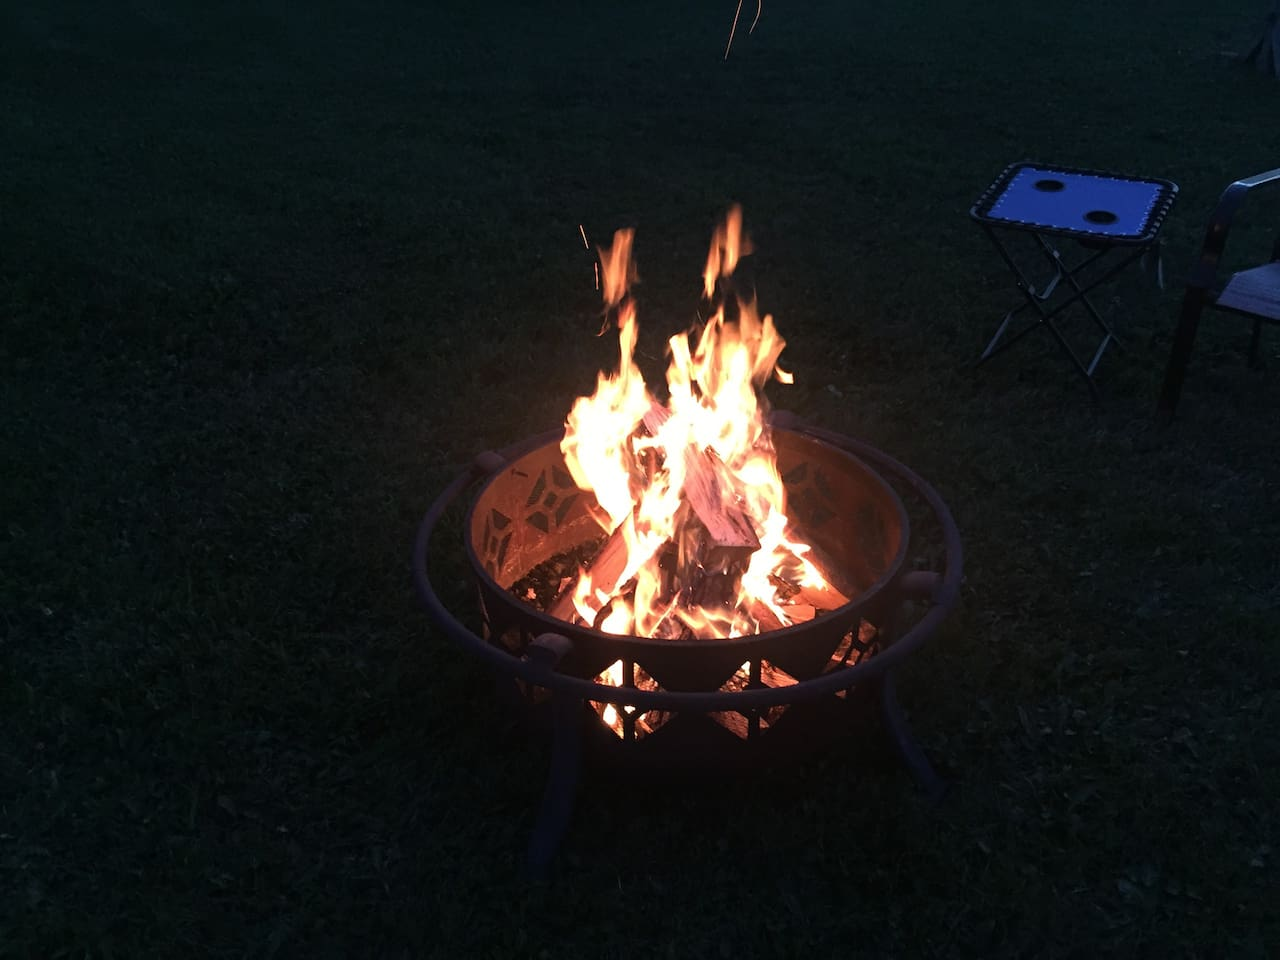 Fire pit to enjoy the evening hours.